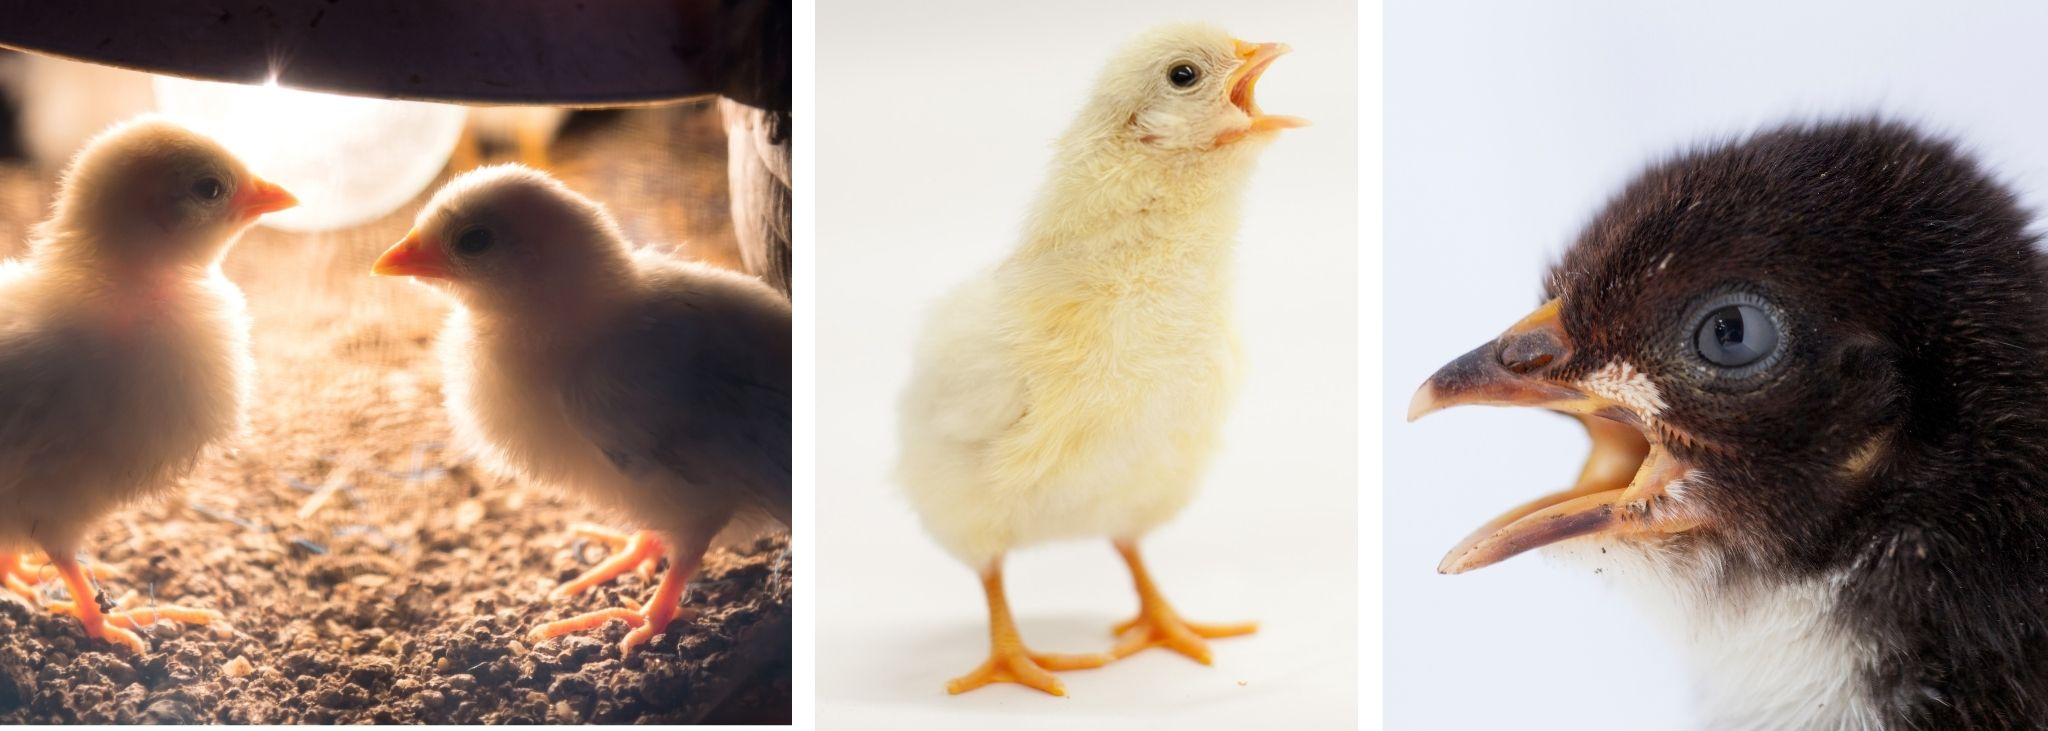 HOW TO CALM A STRESSED BABY CHICK